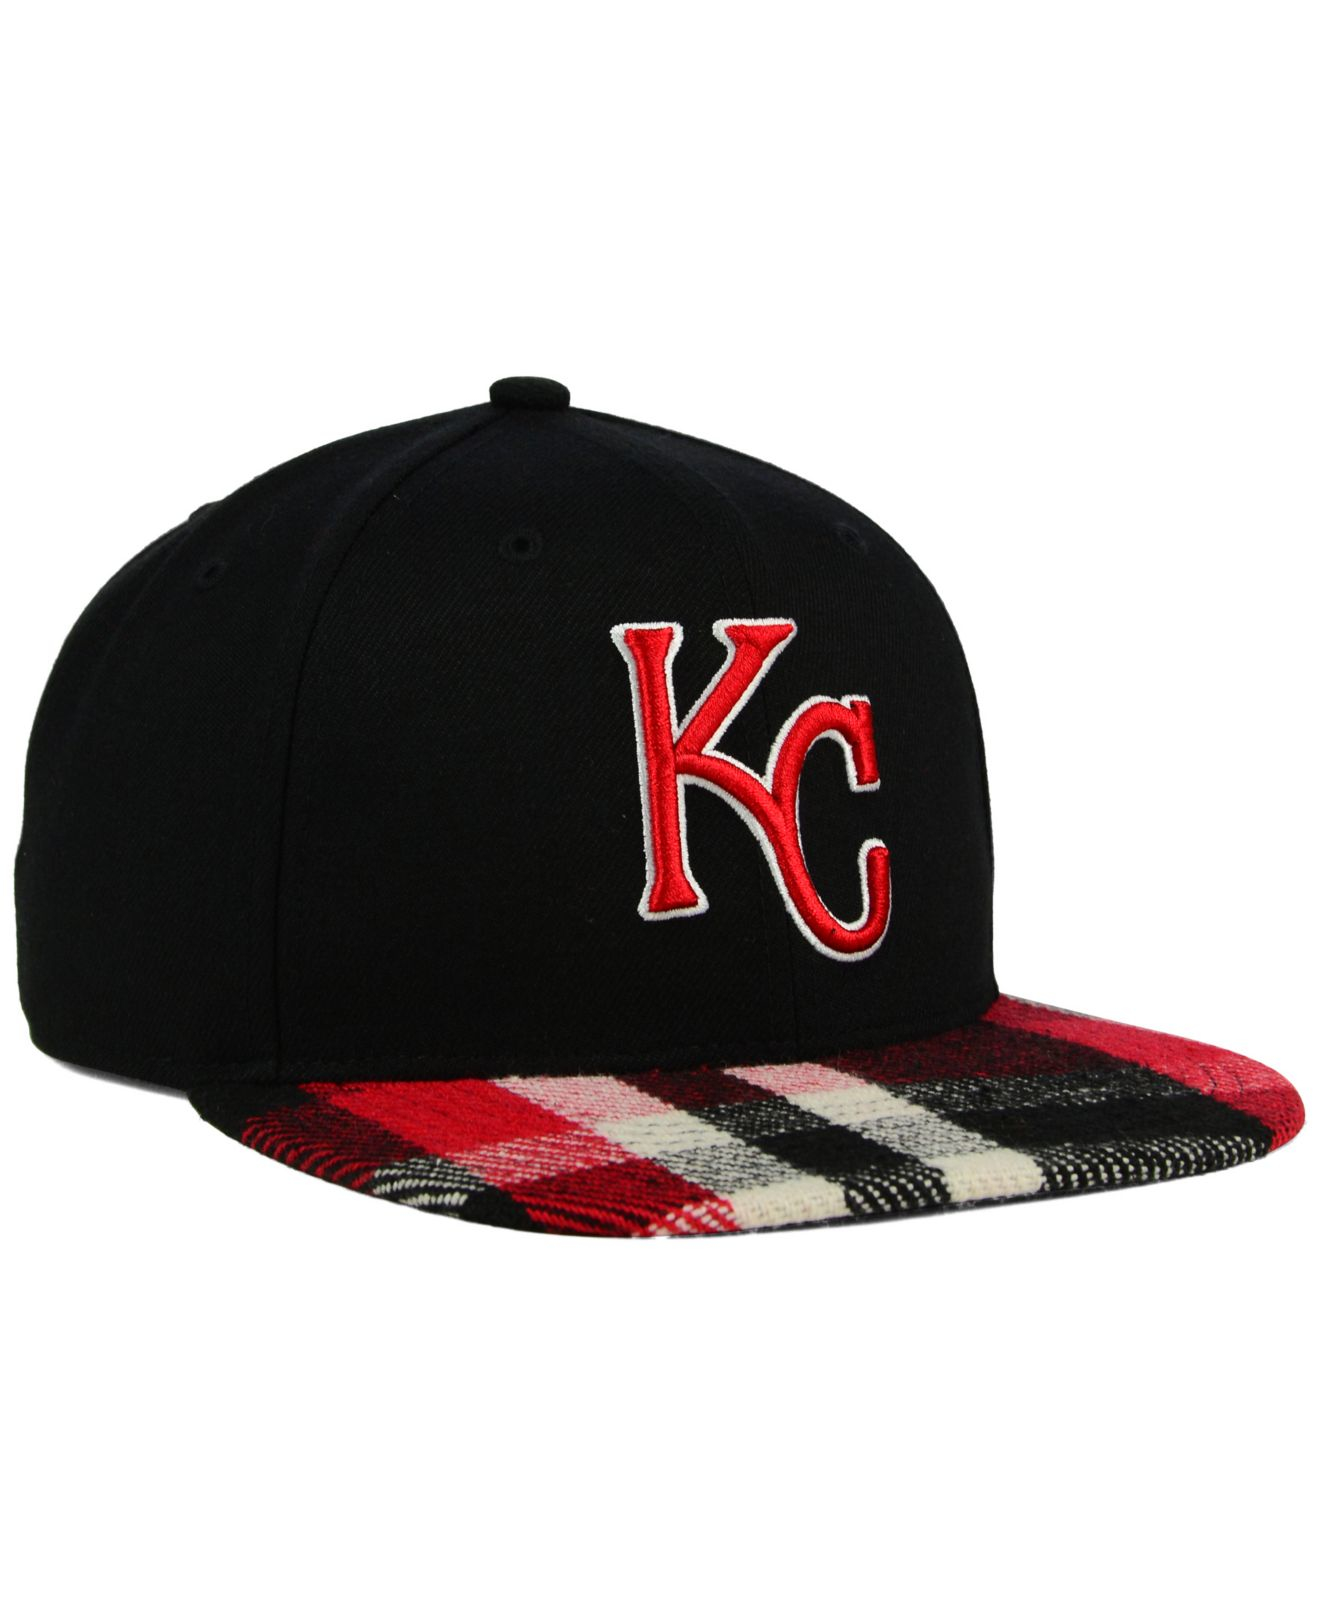 kansas city black single men Buy kansas city royals mens caps, hats, and other accessories at the official store of major league baseball mlbshopcom is your official source for all mlb gear and merchandise for men.